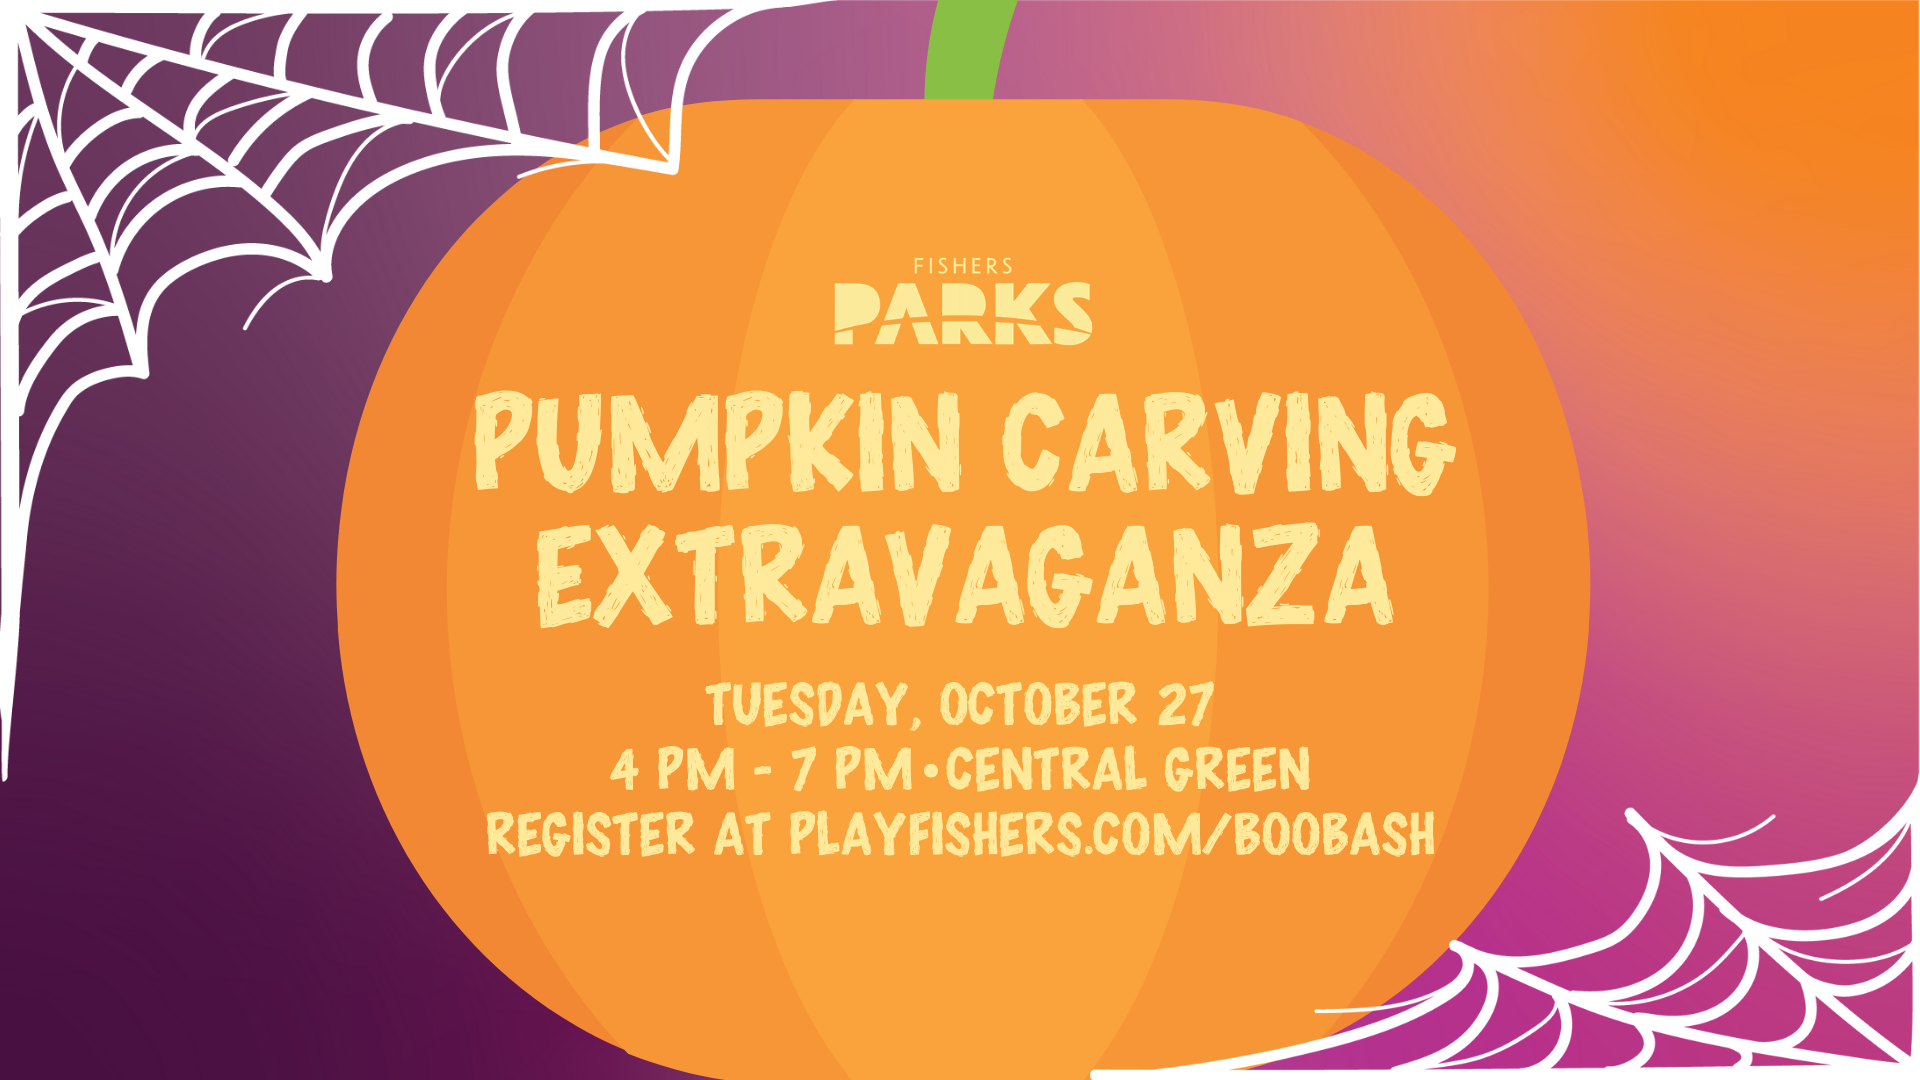 pumpkin carving extravaganza oct 27 4-7pm register at playfishers.com/boobash